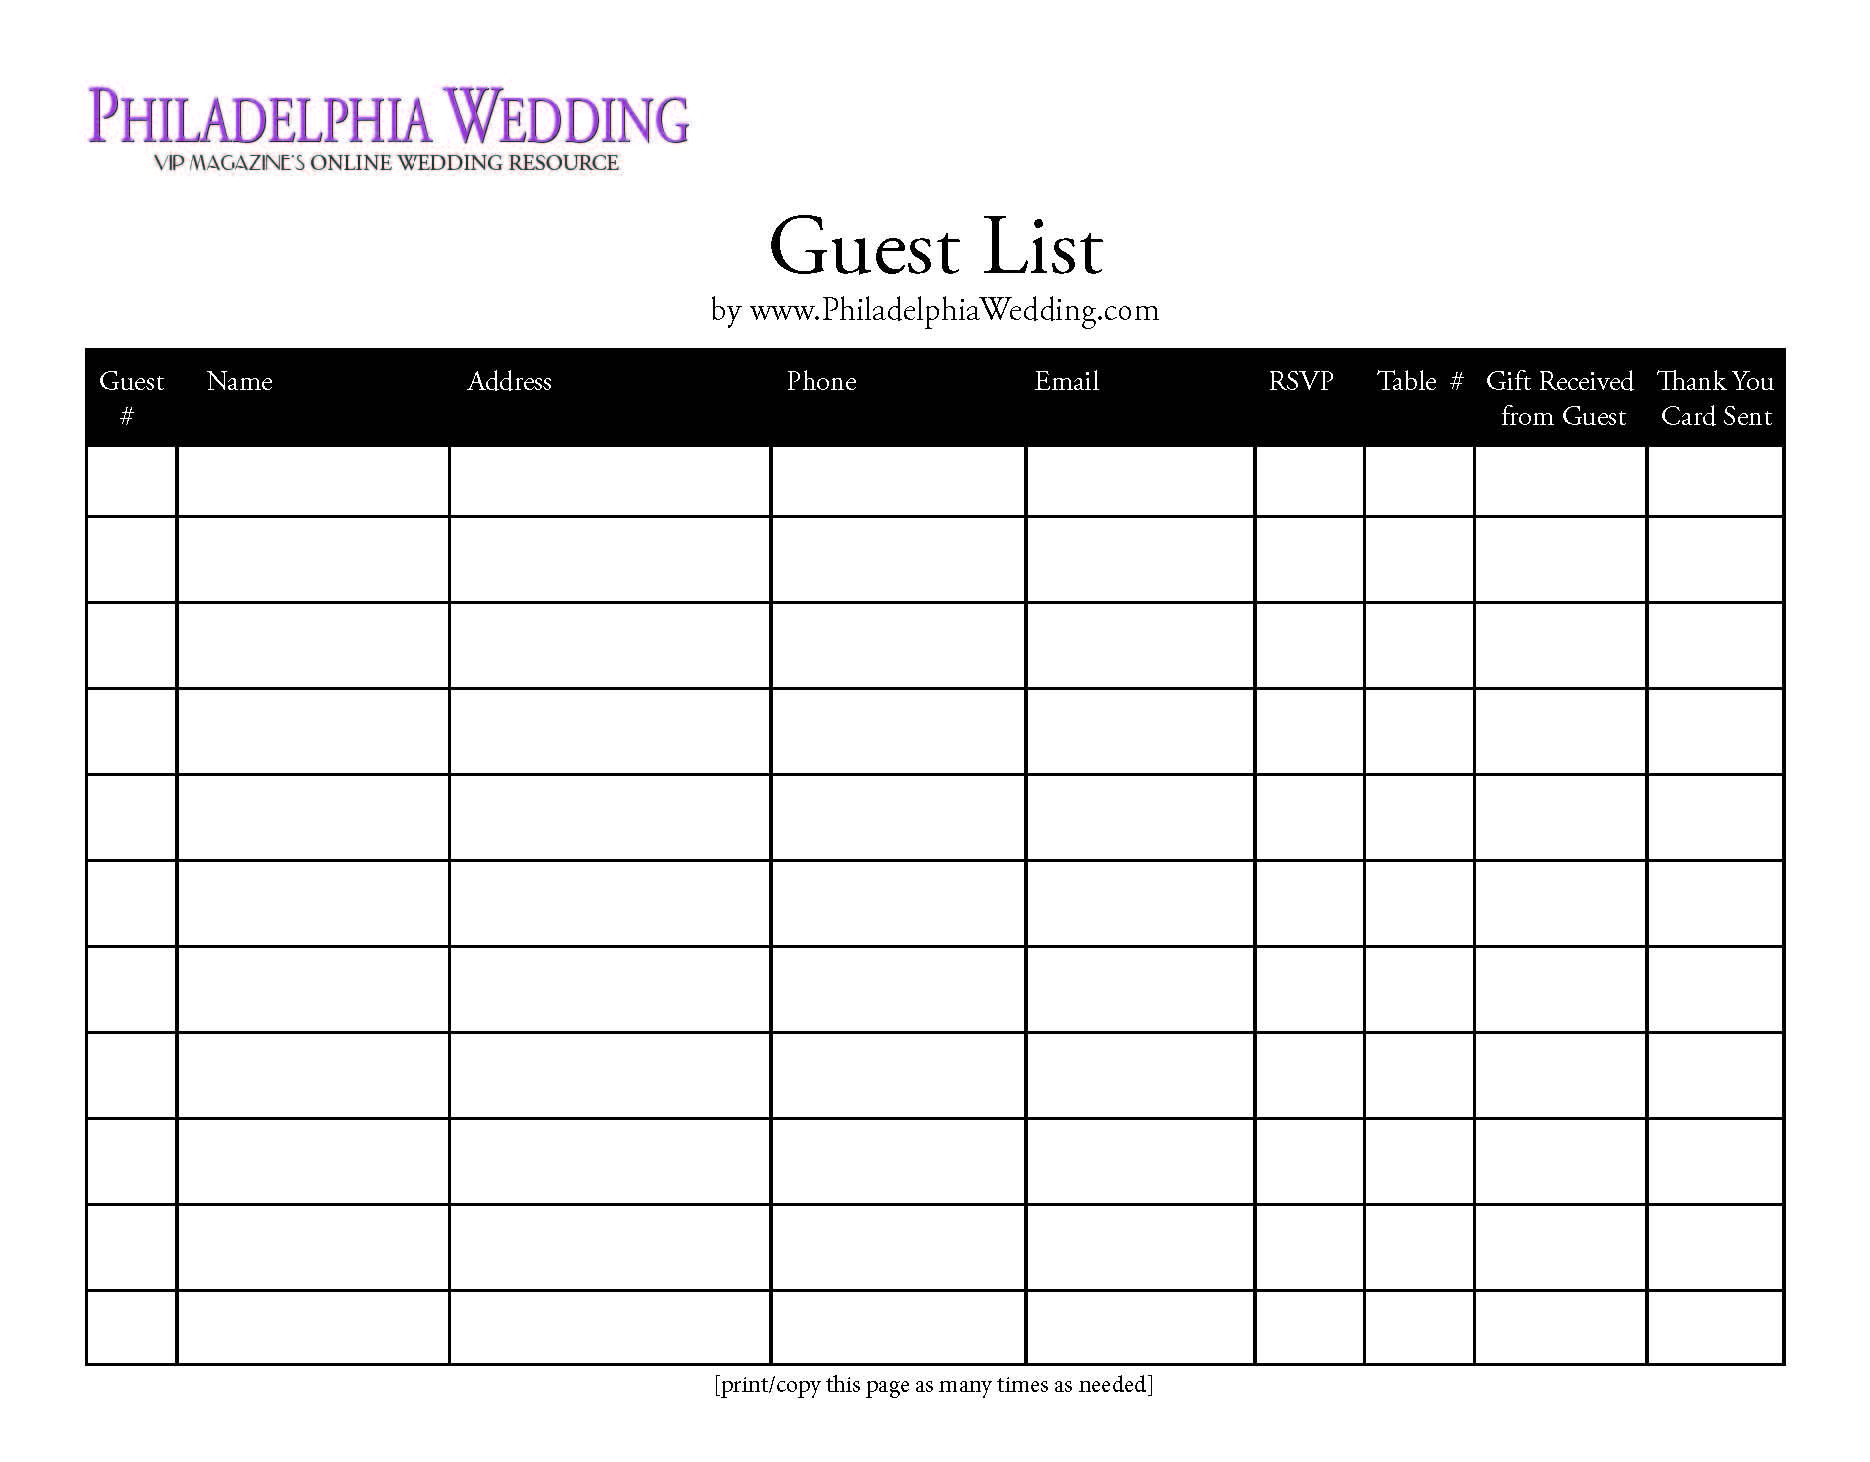 Wedding Guest List Template |  Free Printable Wedding Guest List